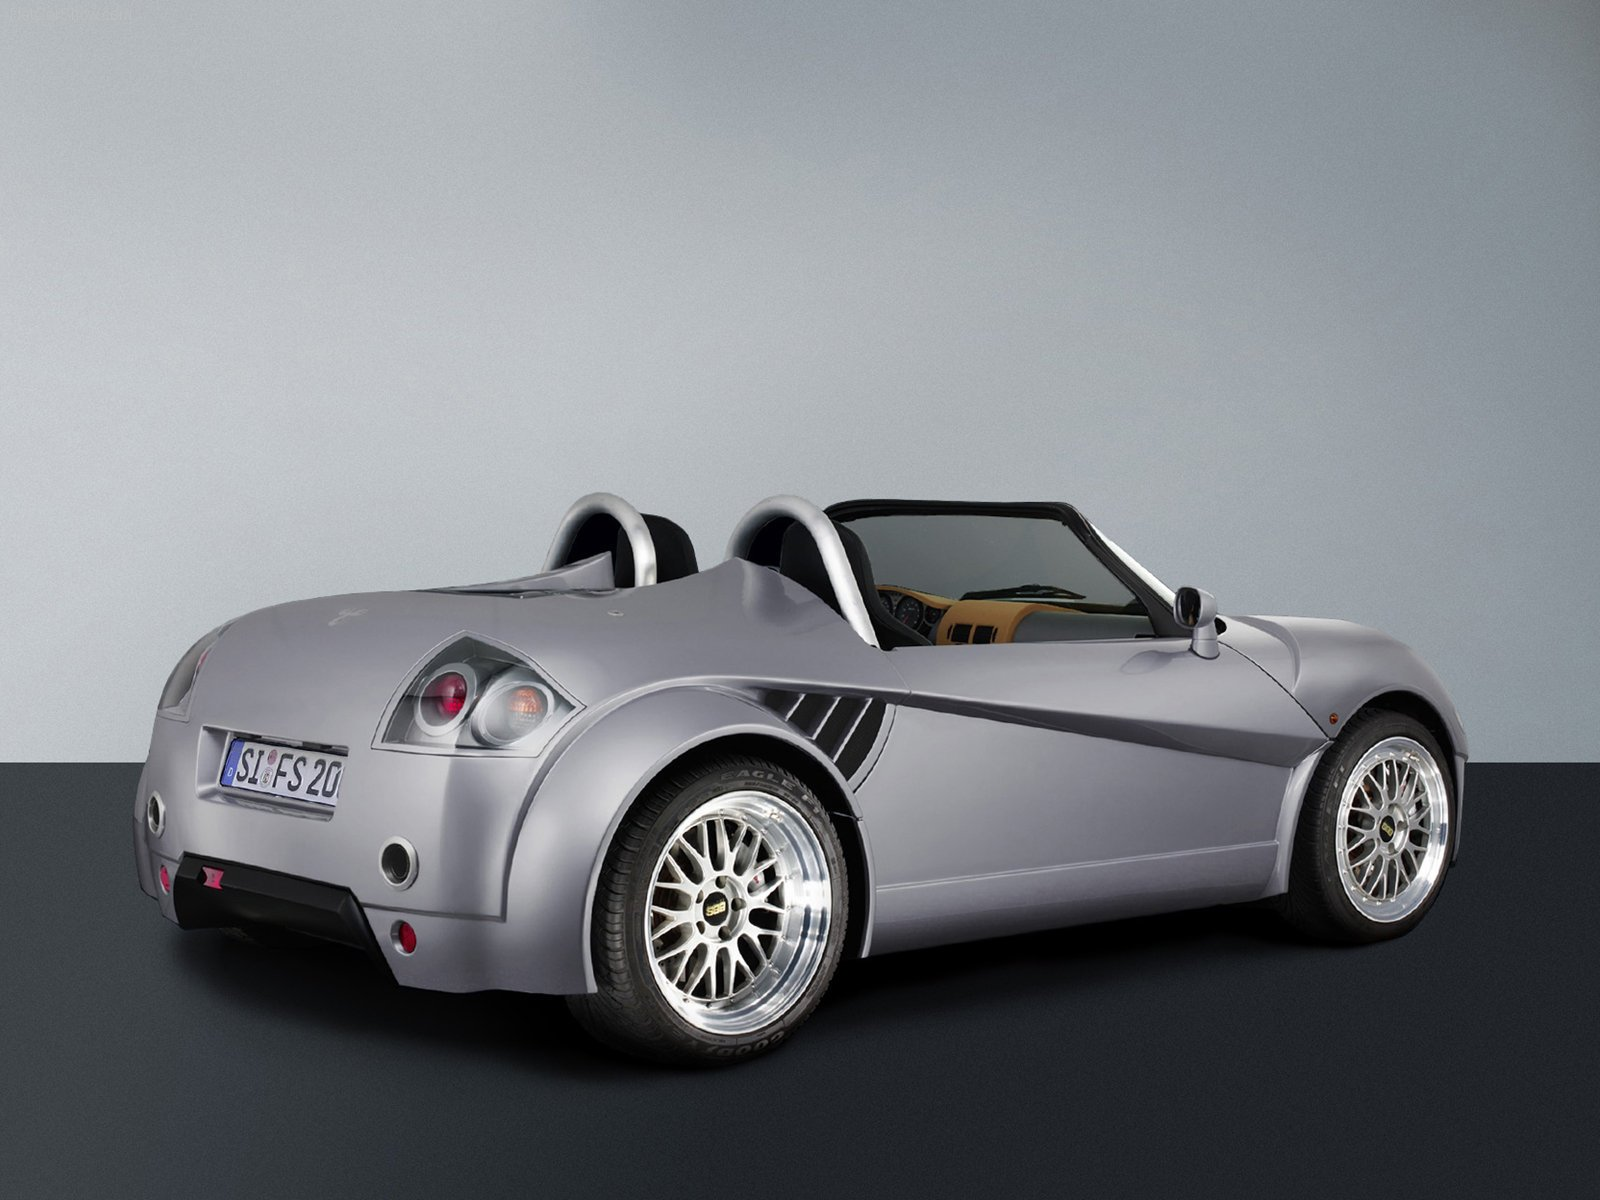 New 2001 Yes Clubsport Car Desktop Wallpaper Insurance Info On This Month